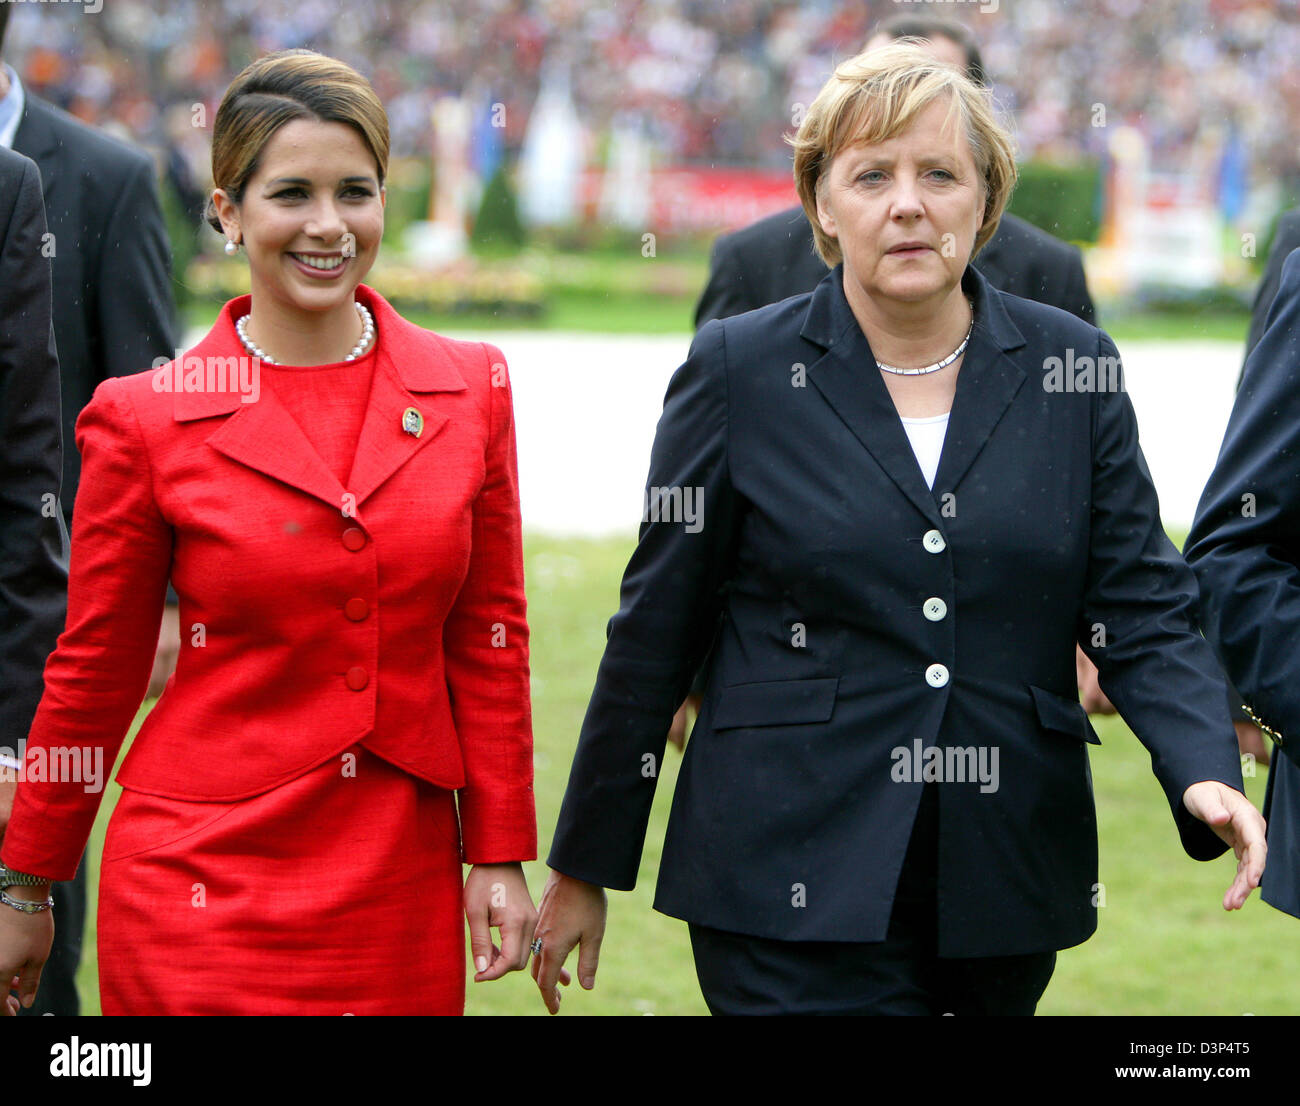 Princess Haya Stock Photos & Princess Haya Stock Images - Alamy